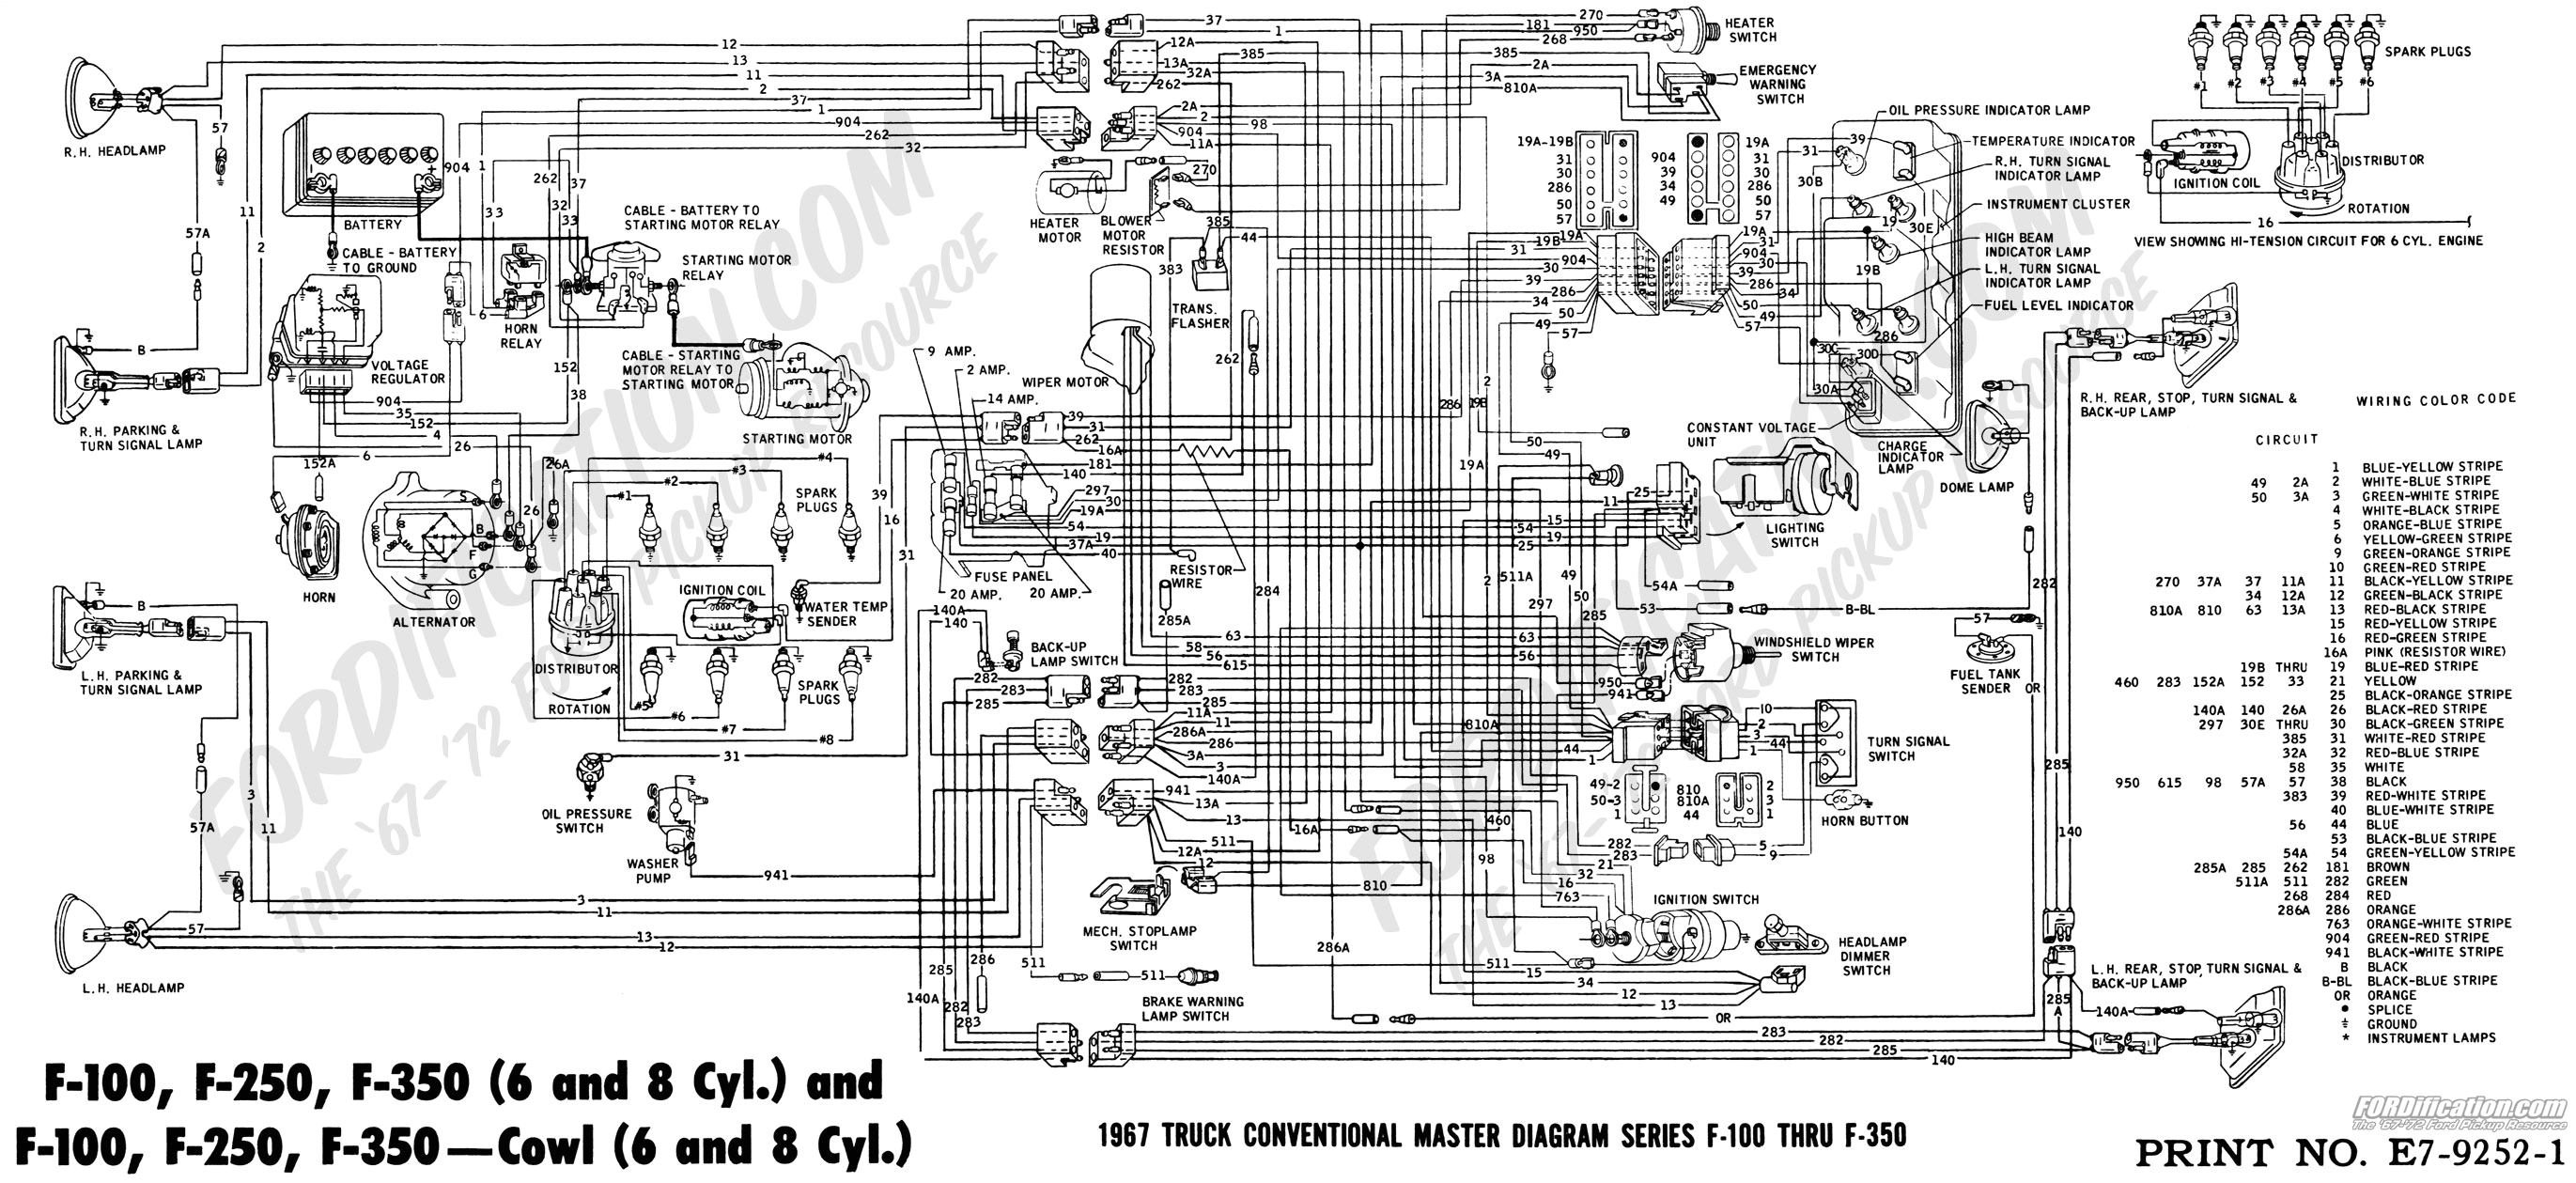 1969 ford f100 wiring harness wiring diagram today